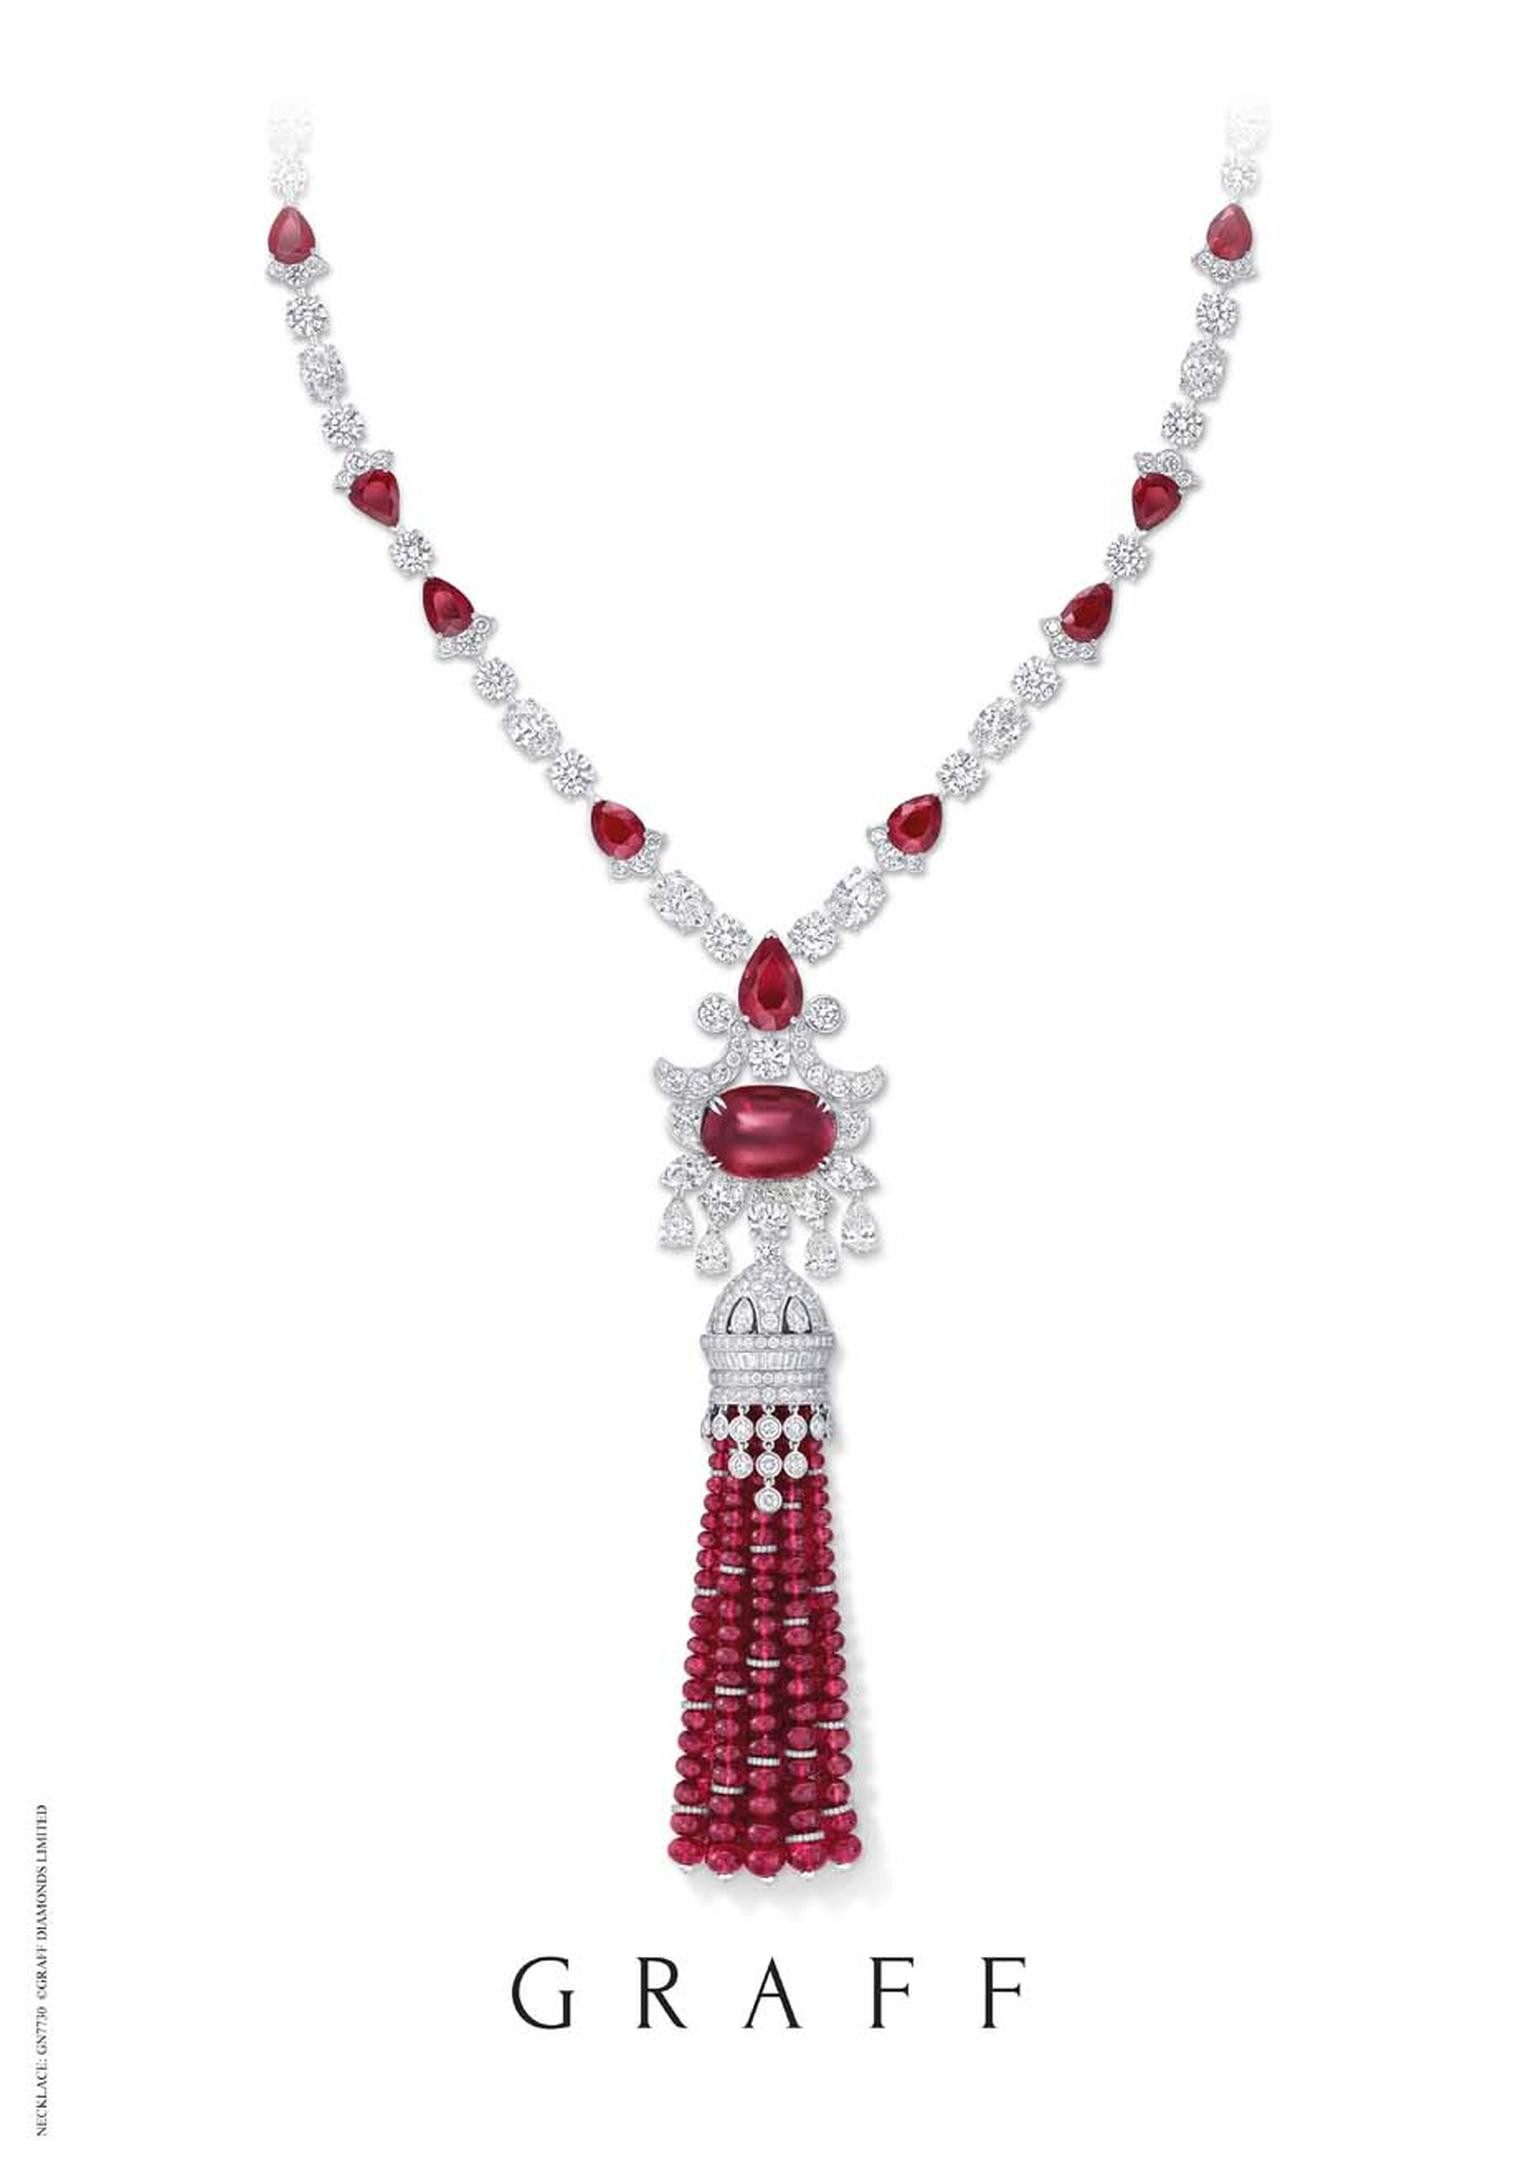 One of the most talked-about high jewellery pieces at the DJWE is bound to be this Graff ruby and diamond high jewellery tassel necklace, featuring an extraordinary 278.55ct of rubies.